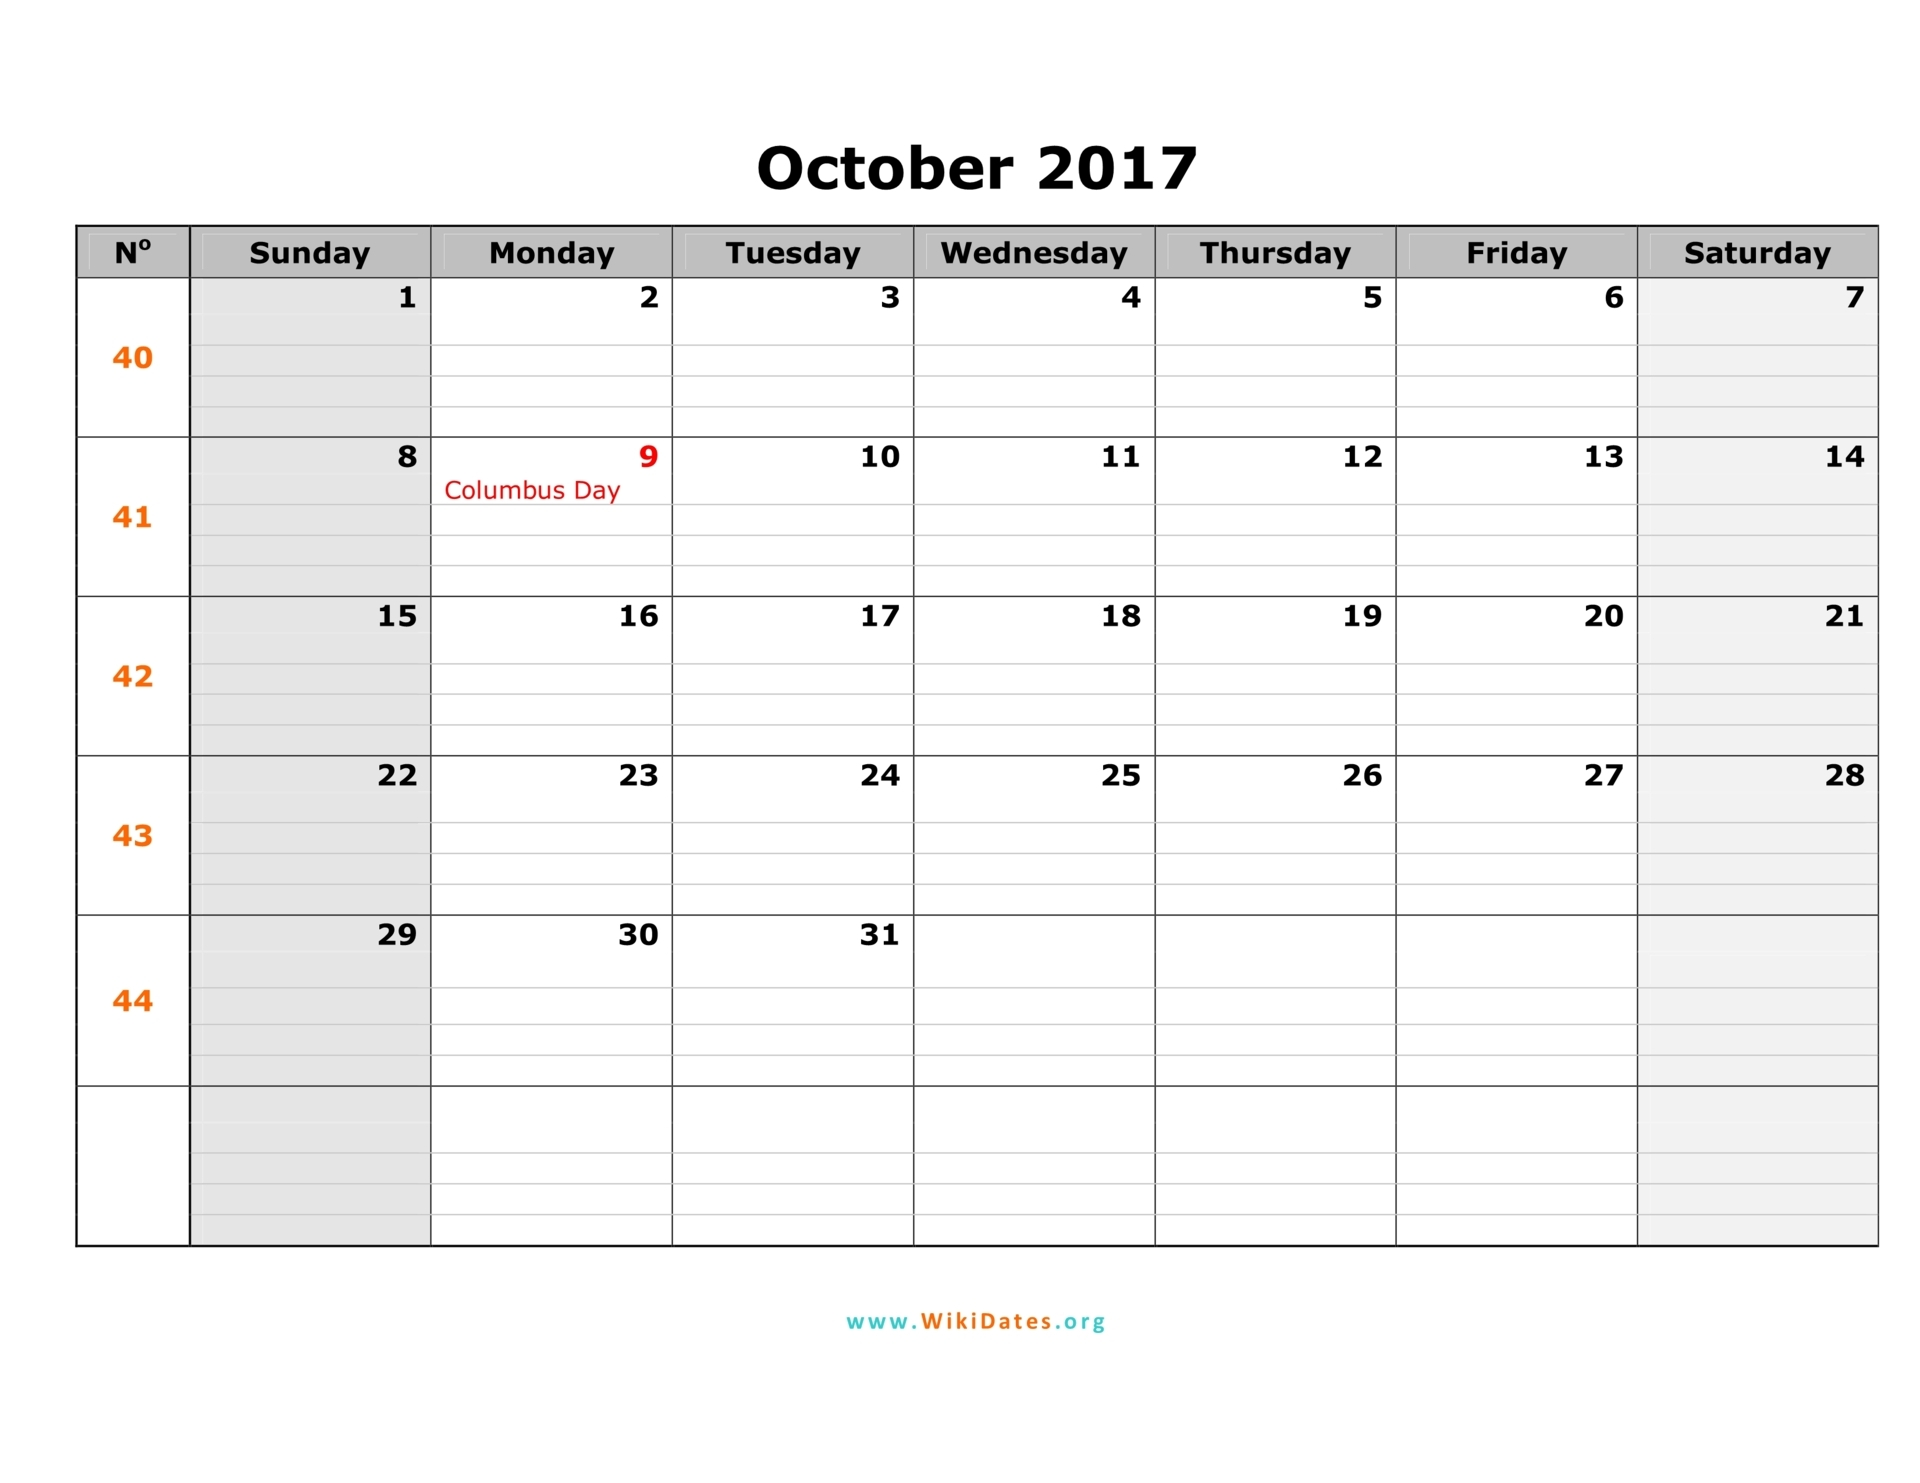 October 2017 Calendars for Word, Excel & PDF